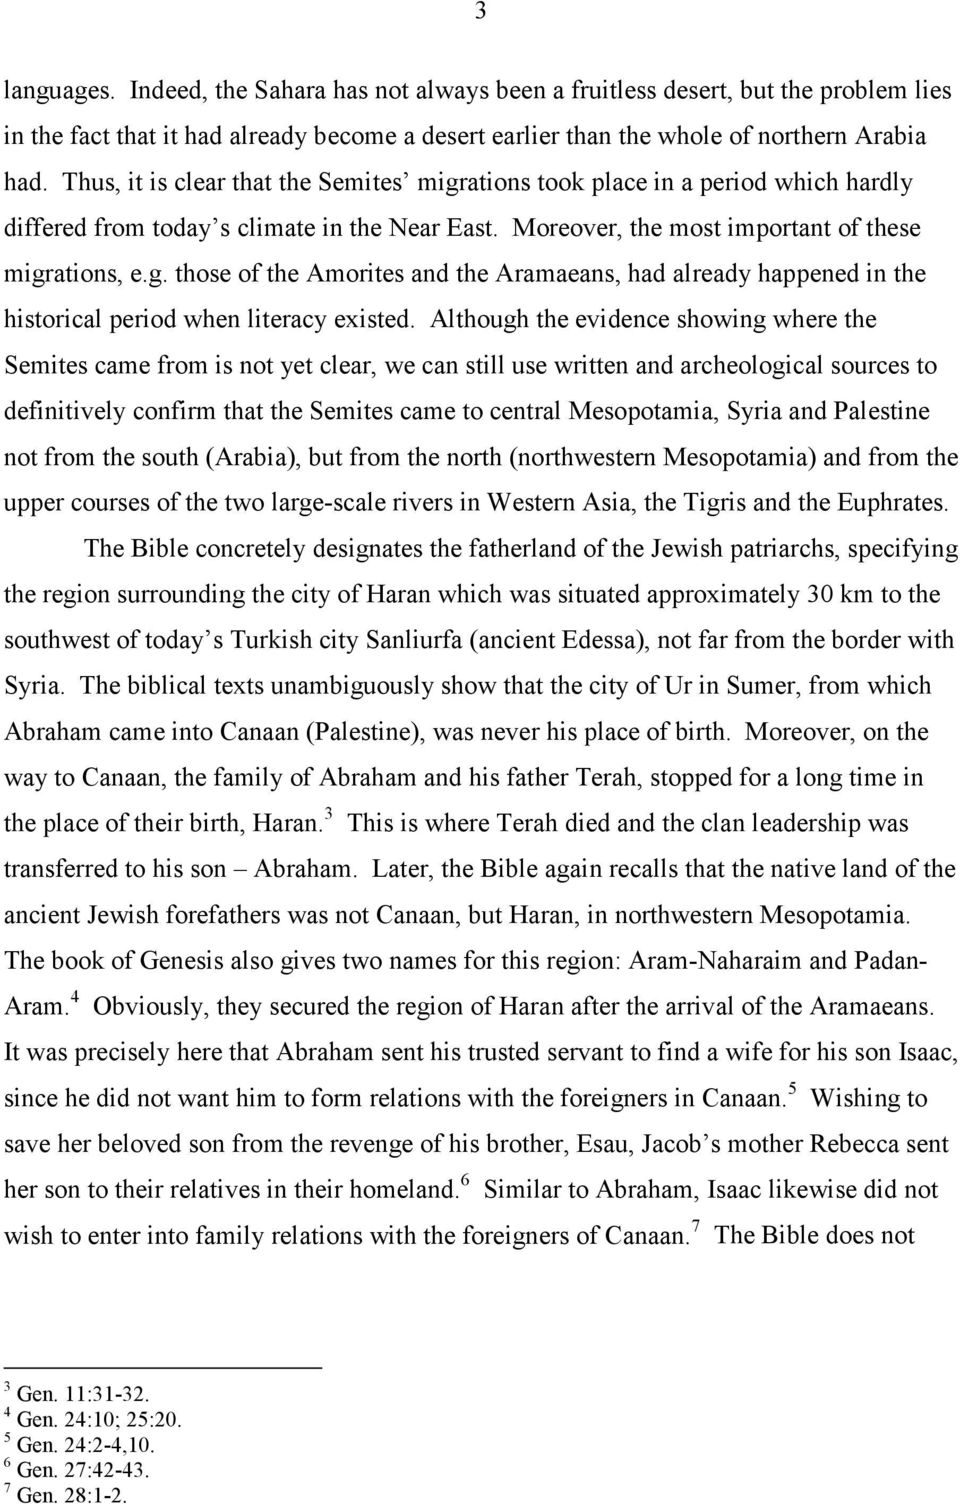 Although the evidence showing where the Semites came from is not yet clear, we can still use written and archeological sources to definitively confirm that the Semites came to central Mesopotamia,